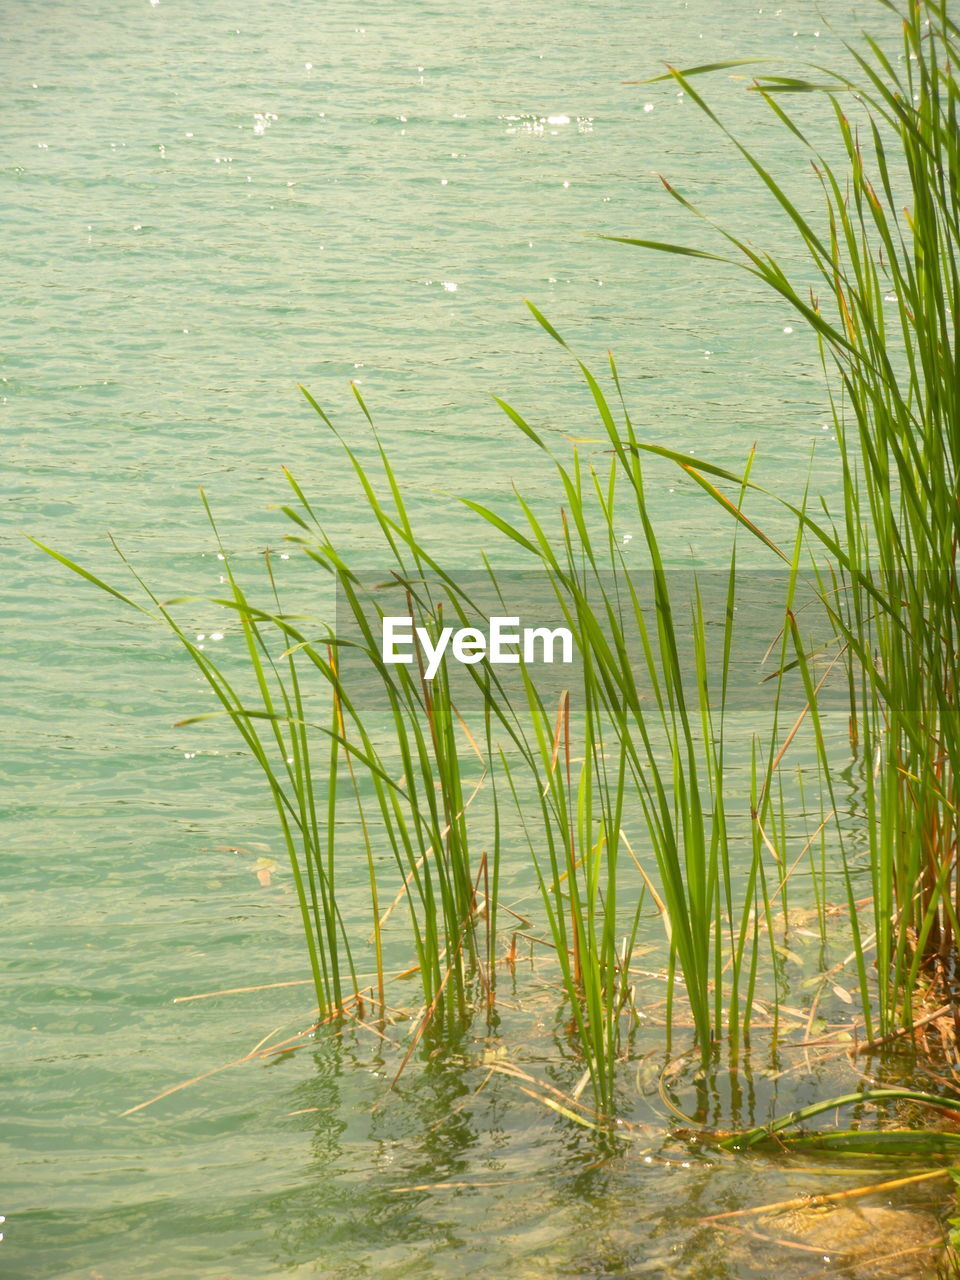 water, lake, nature, growth, grass, plant, green color, no people, outdoors, tranquility, beauty in nature, beginnings, day, environment, direction, freedom, swamp